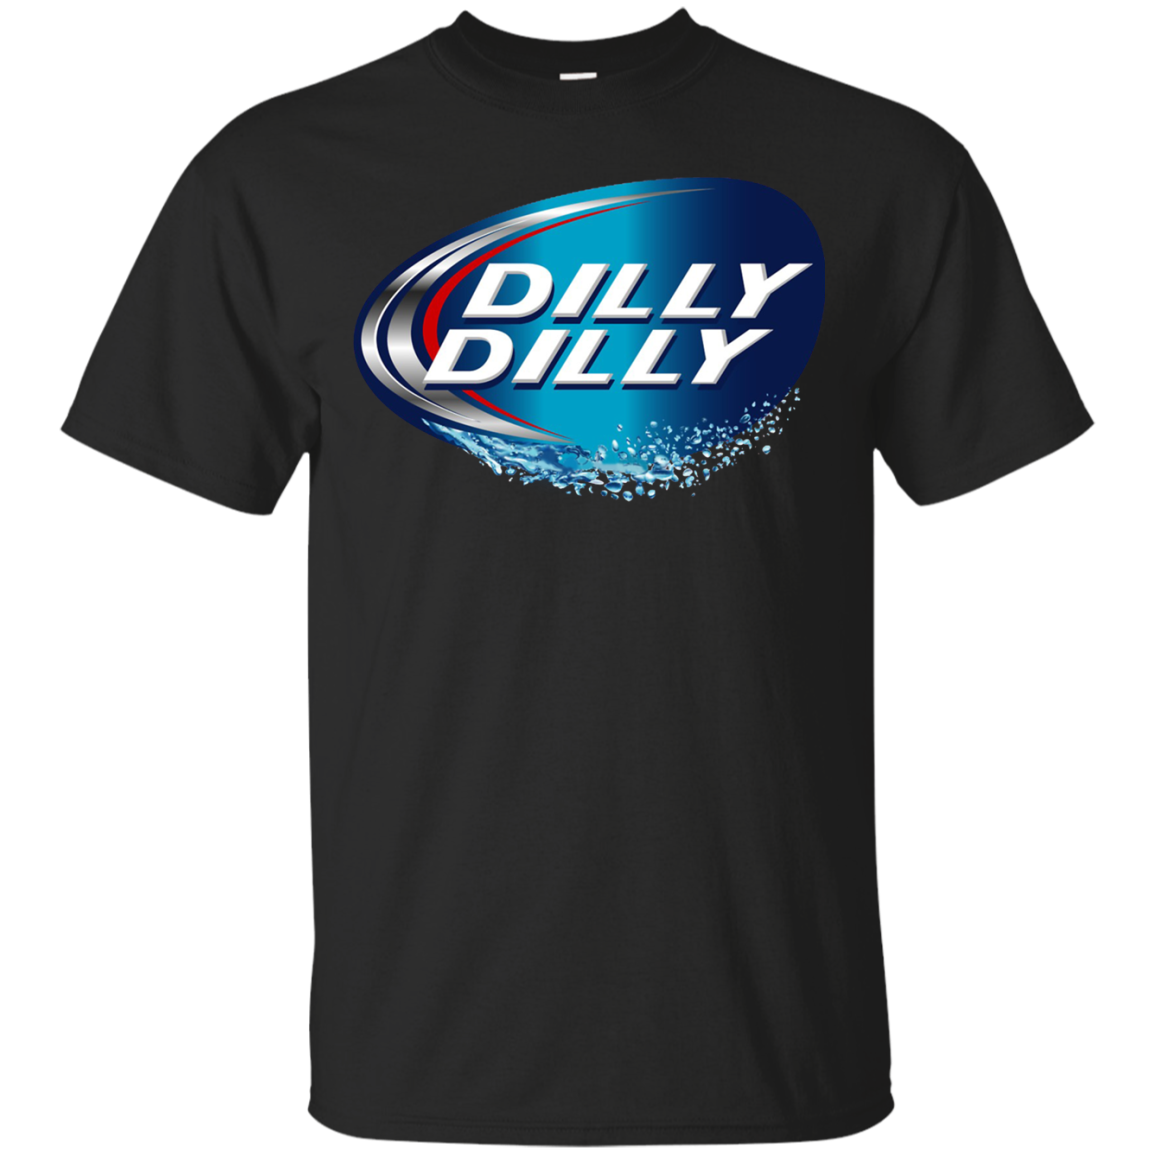 Dilly dilly bud light meaning shirt, hoodie (With images